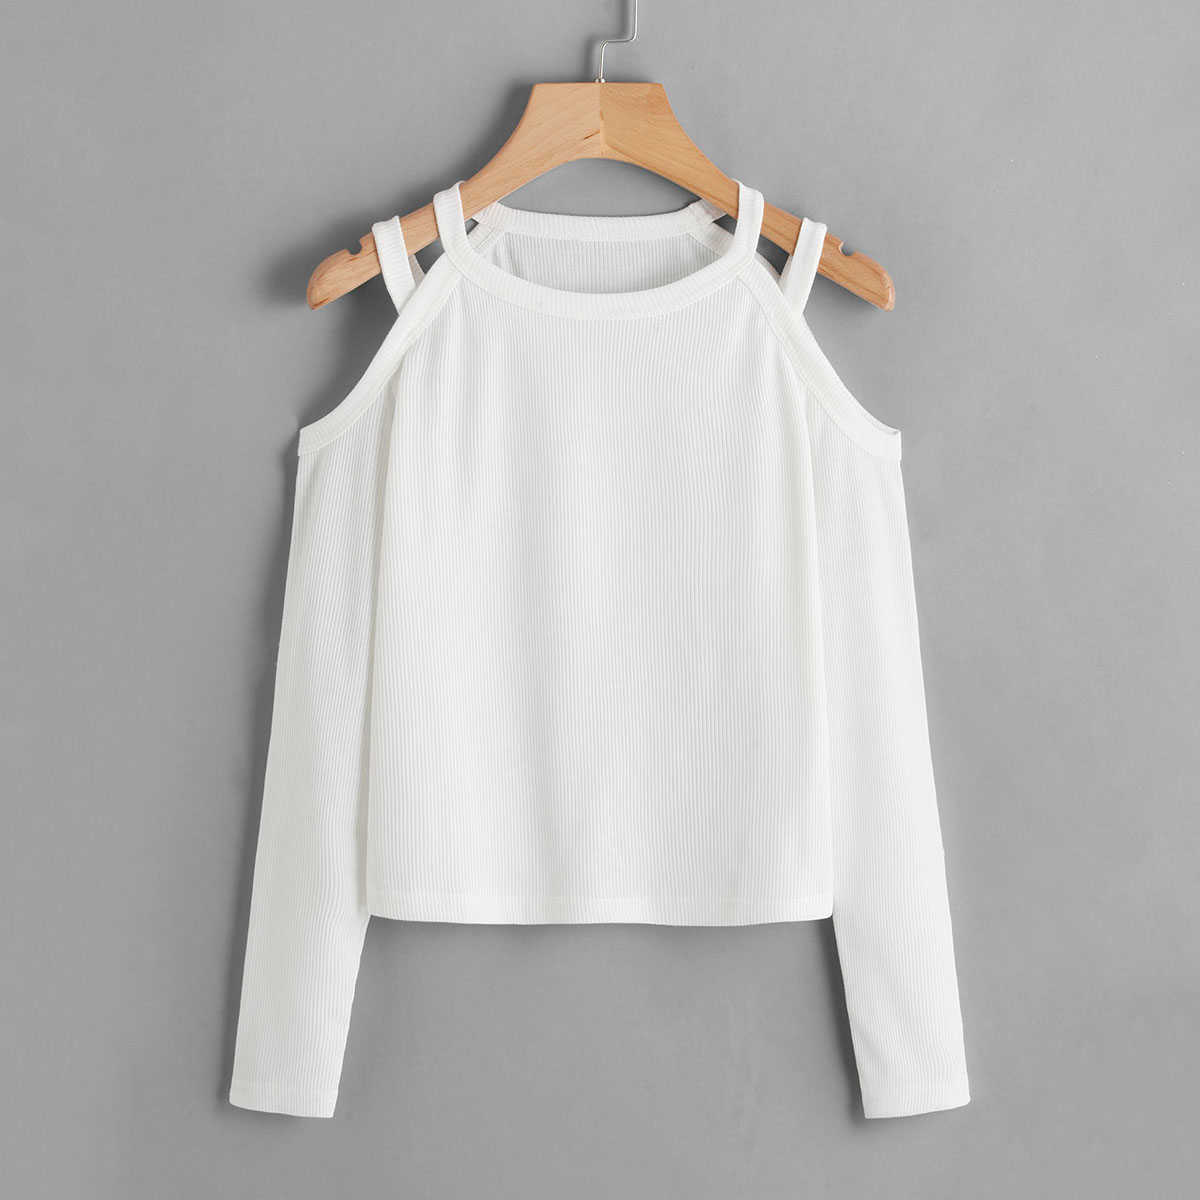 Cold Shoulder Ribbed Tee in White by ROMWE on GOOFASH